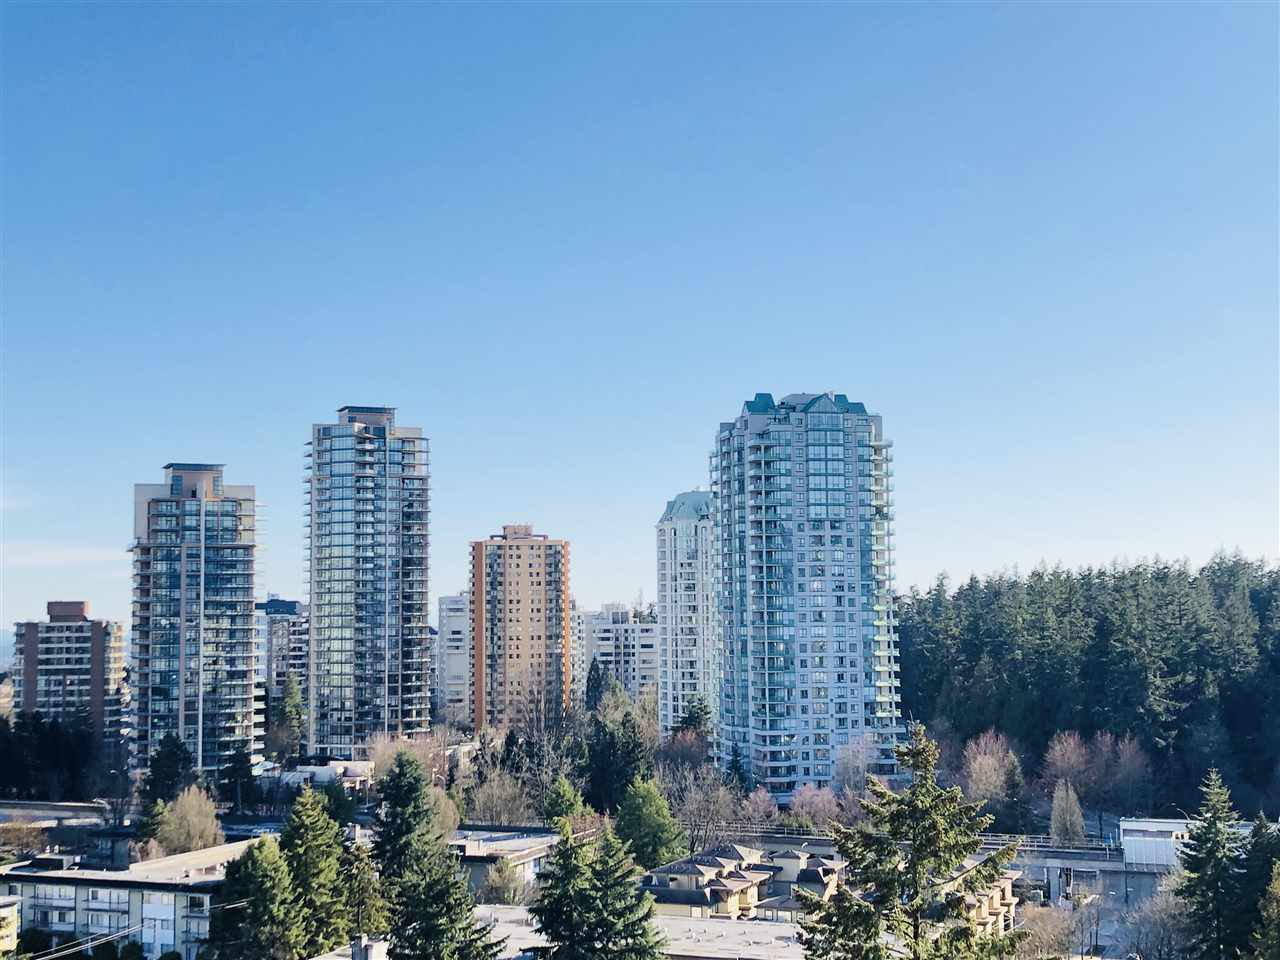 """Main Photo: 1604 5885 OLIVE Avenue in Burnaby: Metrotown Condo for sale in """"THE METROPOLITAN"""" (Burnaby South)  : MLS®# R2350465"""